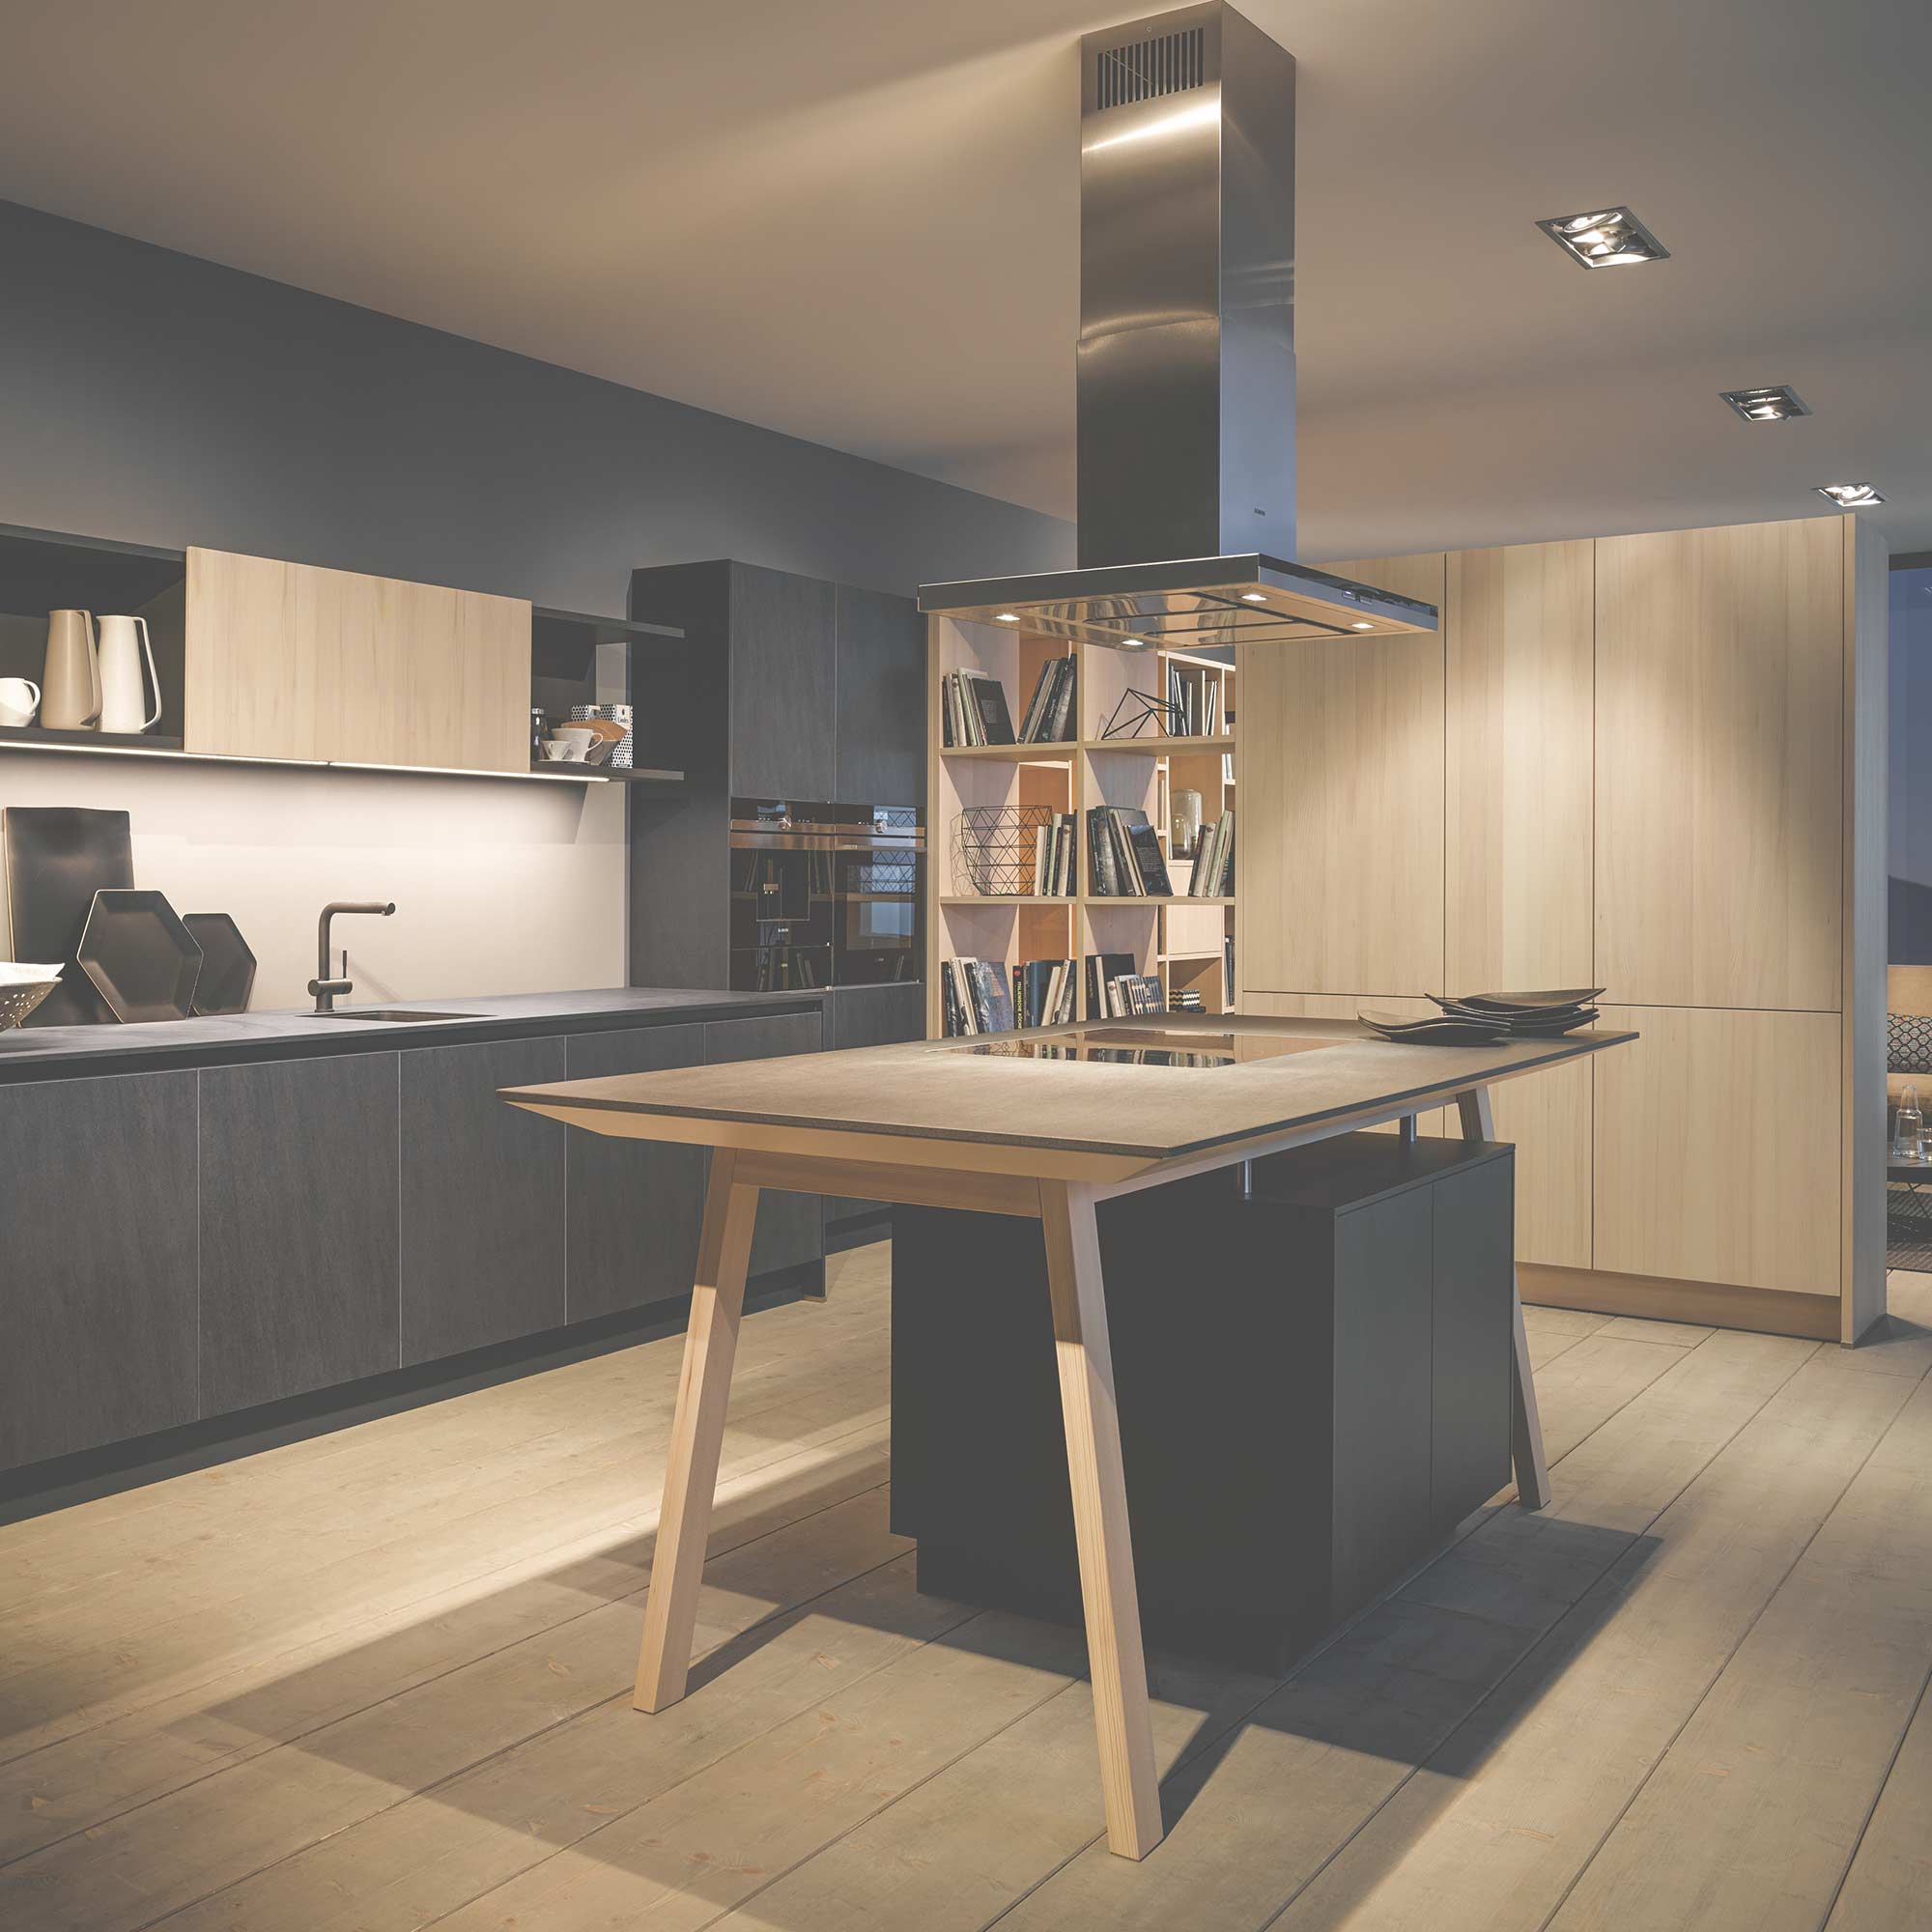 Quality German kitchen design by Hubble